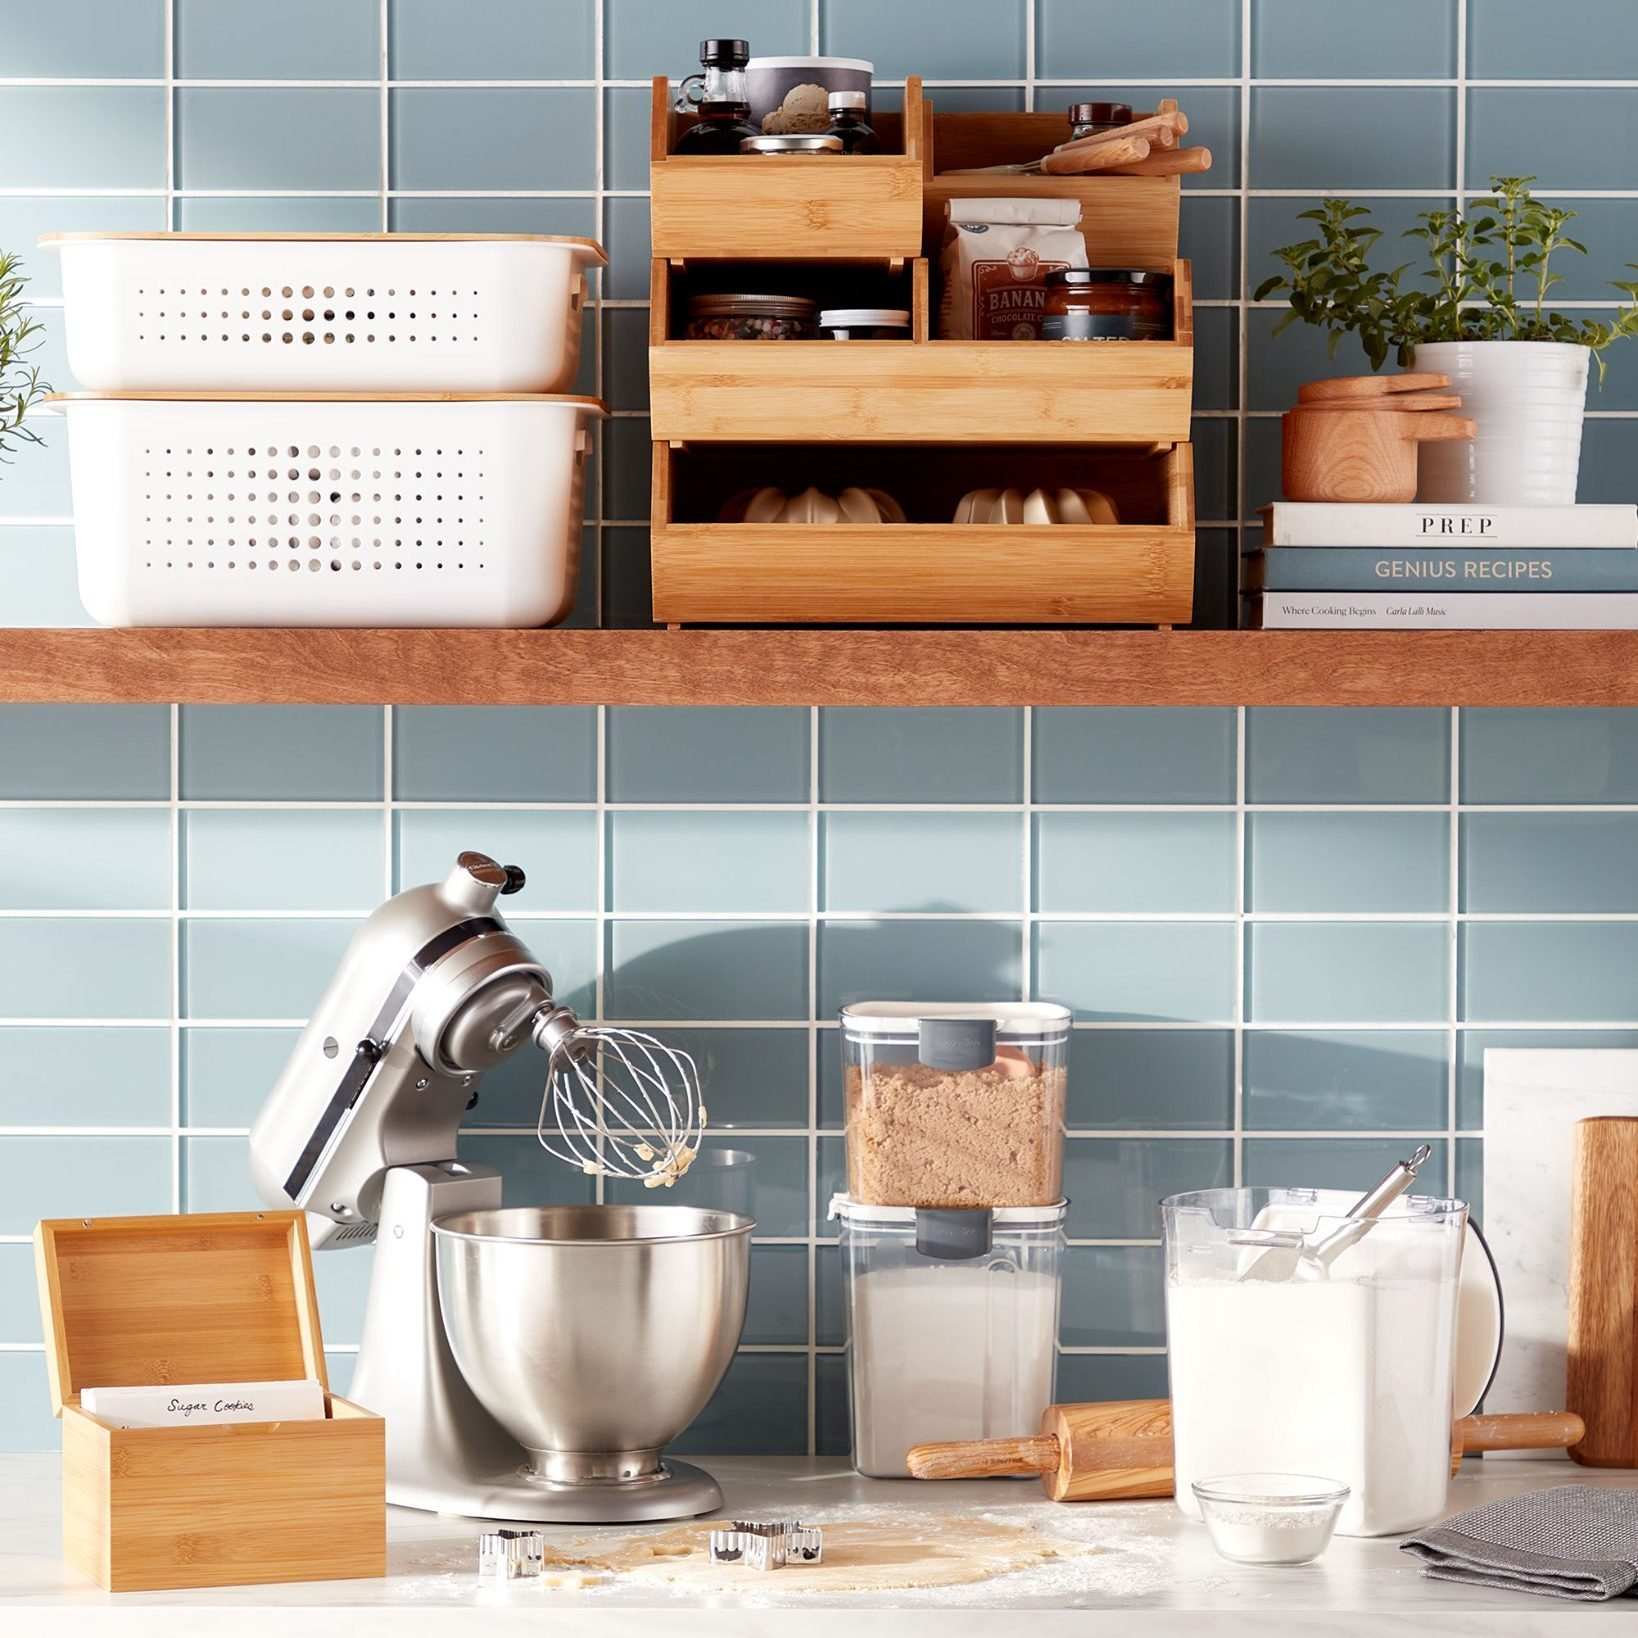 kitchen gadgets from The Container Store